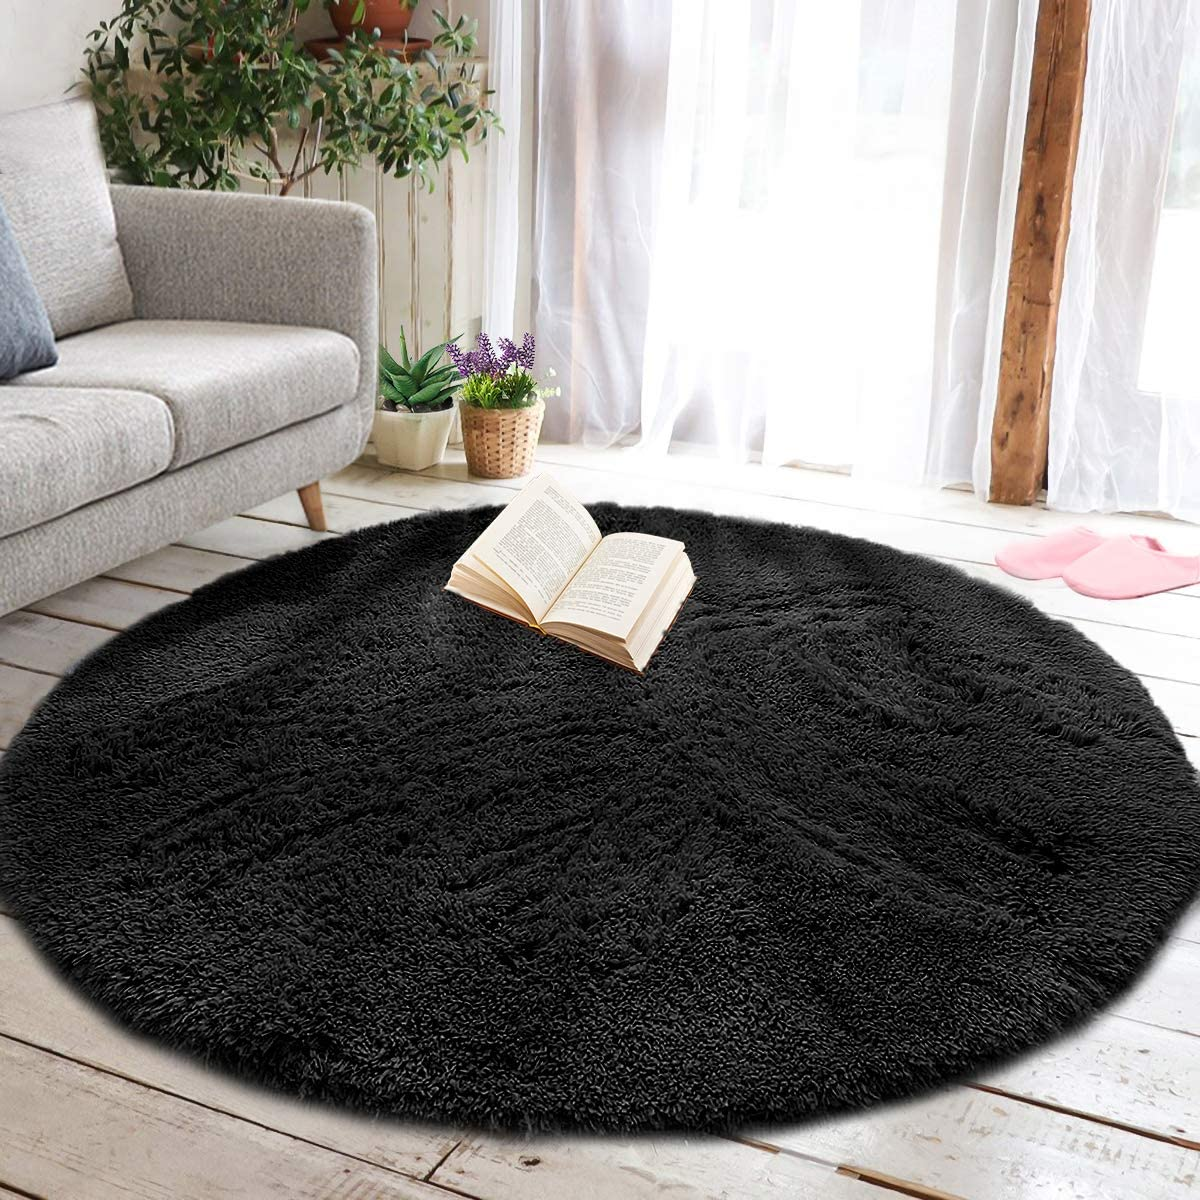 junovo Round Rug for Bedroom, Soft Fluffy Circle Area Rugs for Kids Girls Teen's Room, Shaggy Plush Cute Carpet Large Circular Nursery Rugs for Kids Boys Baby Bedroom Living Room Decor, 6ft Black